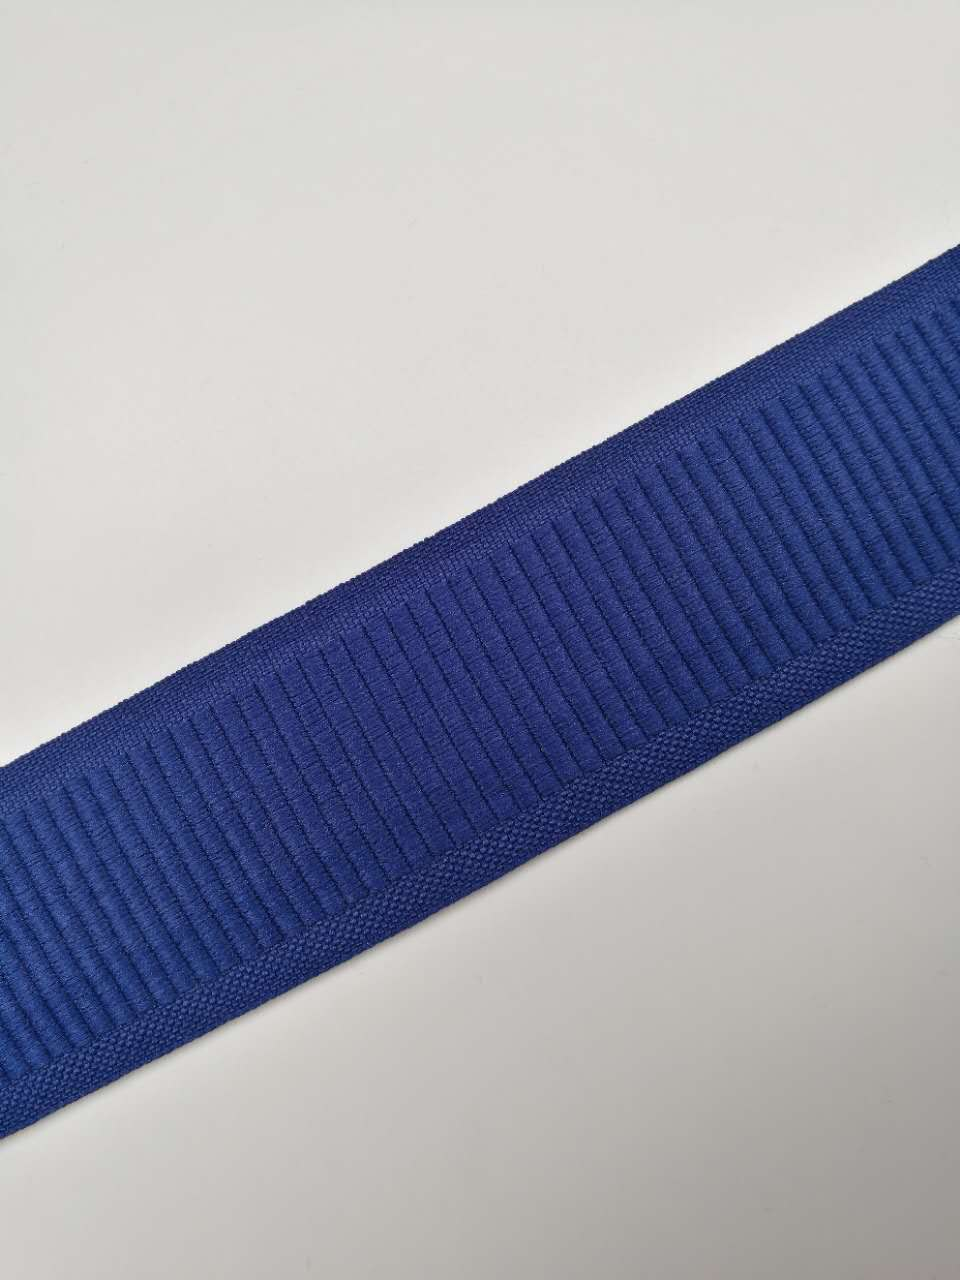 Polyester Webbing Tape (6)